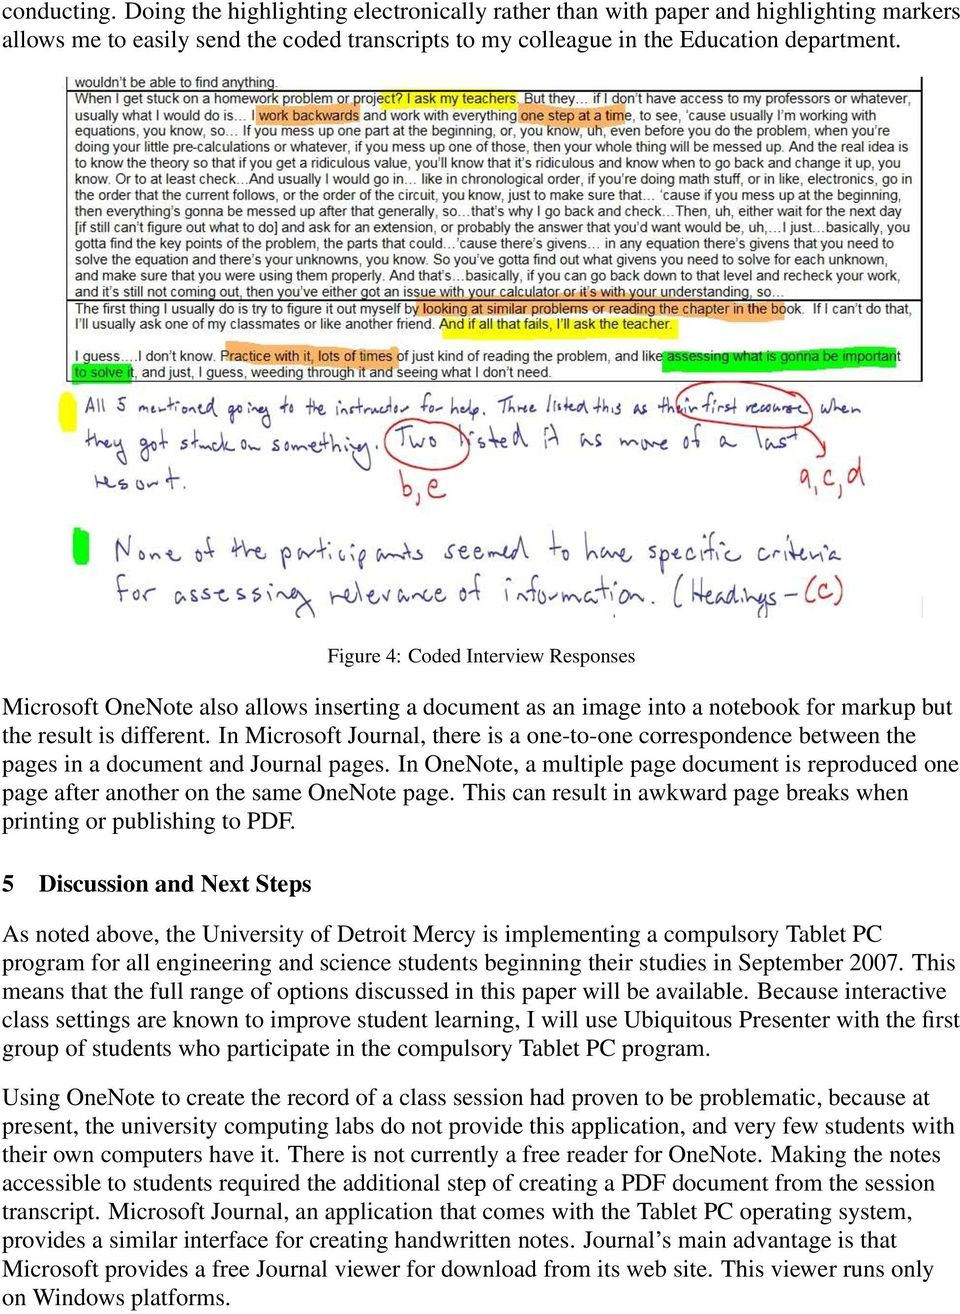 In Microsoft Journal, there is a one-to-one correspondence between the pages in a document and Journal pages.